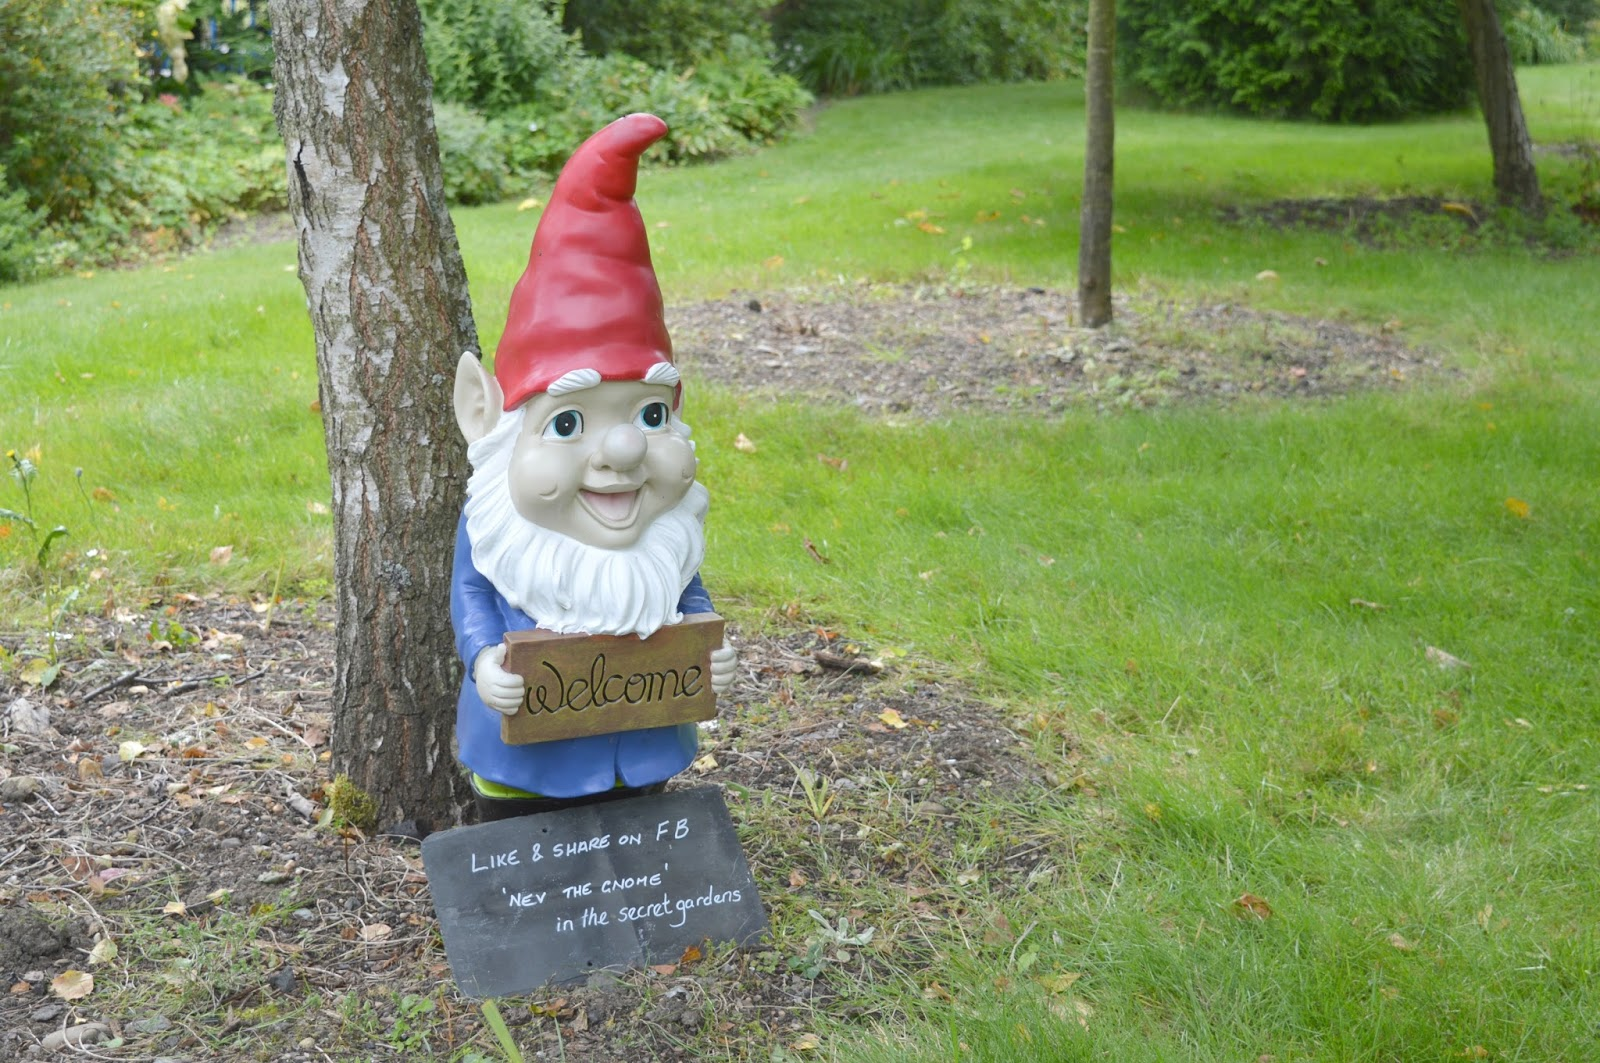 Gateshead's Great Outdoors - Birkheads Secret Gardens Nev the Gnome